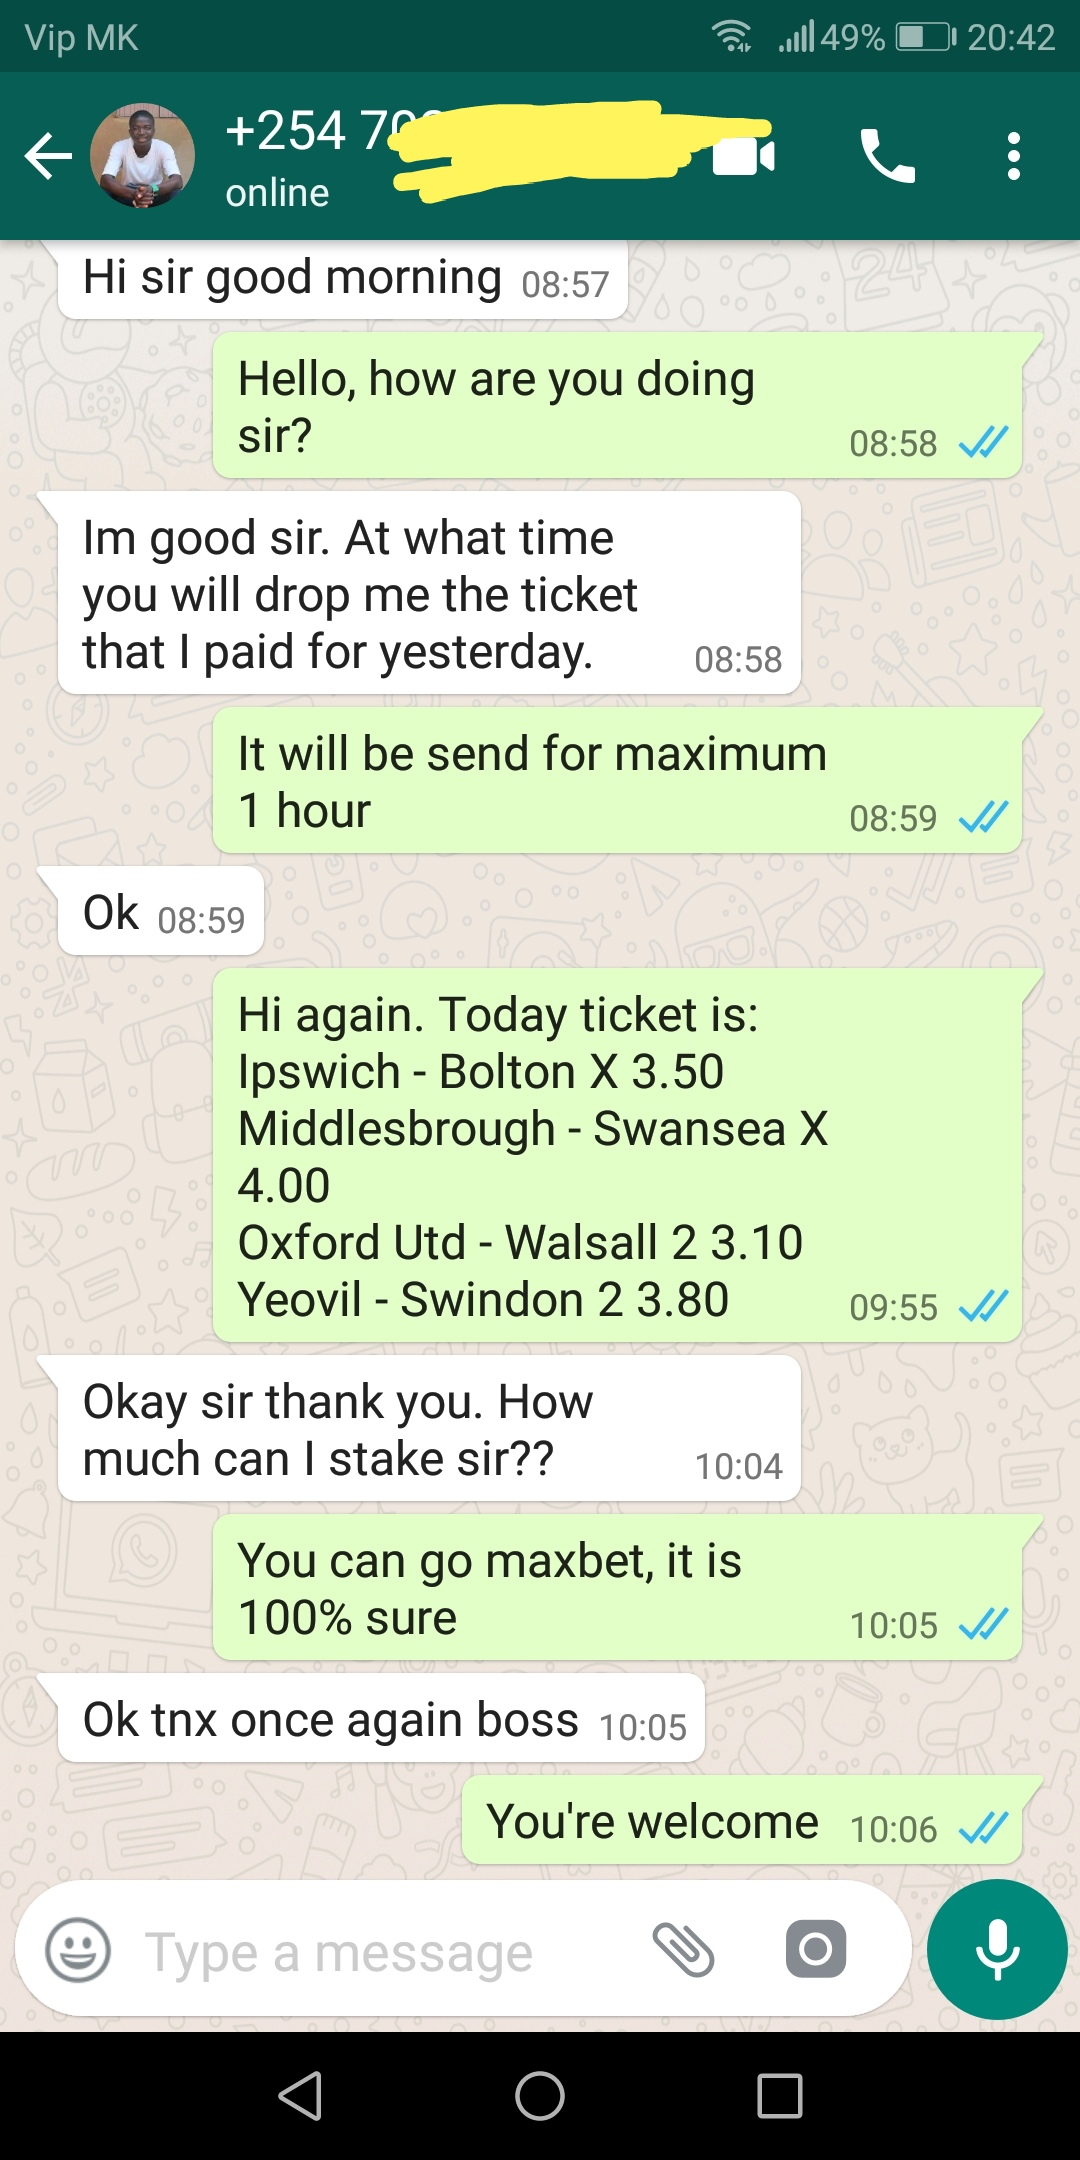 http://pro-soccertip.com/wp-content/uploads/2018/09/WhatsApp-proof-ticket-22-09-2018.jpg